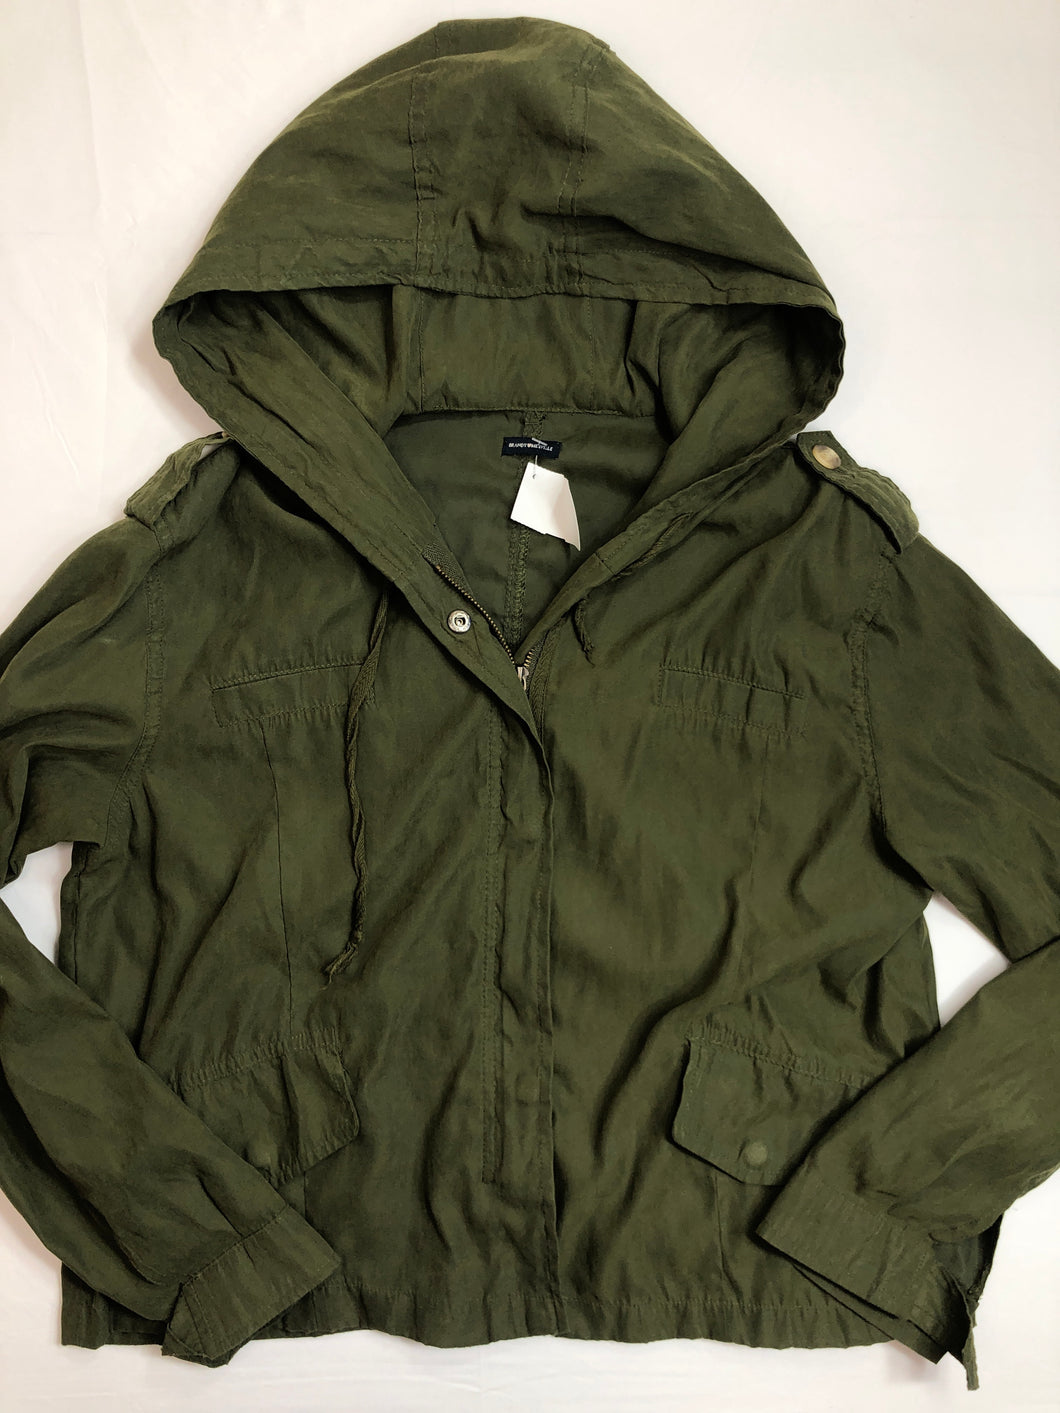 Gently Used Women's Brandy Melville Jacket Size S